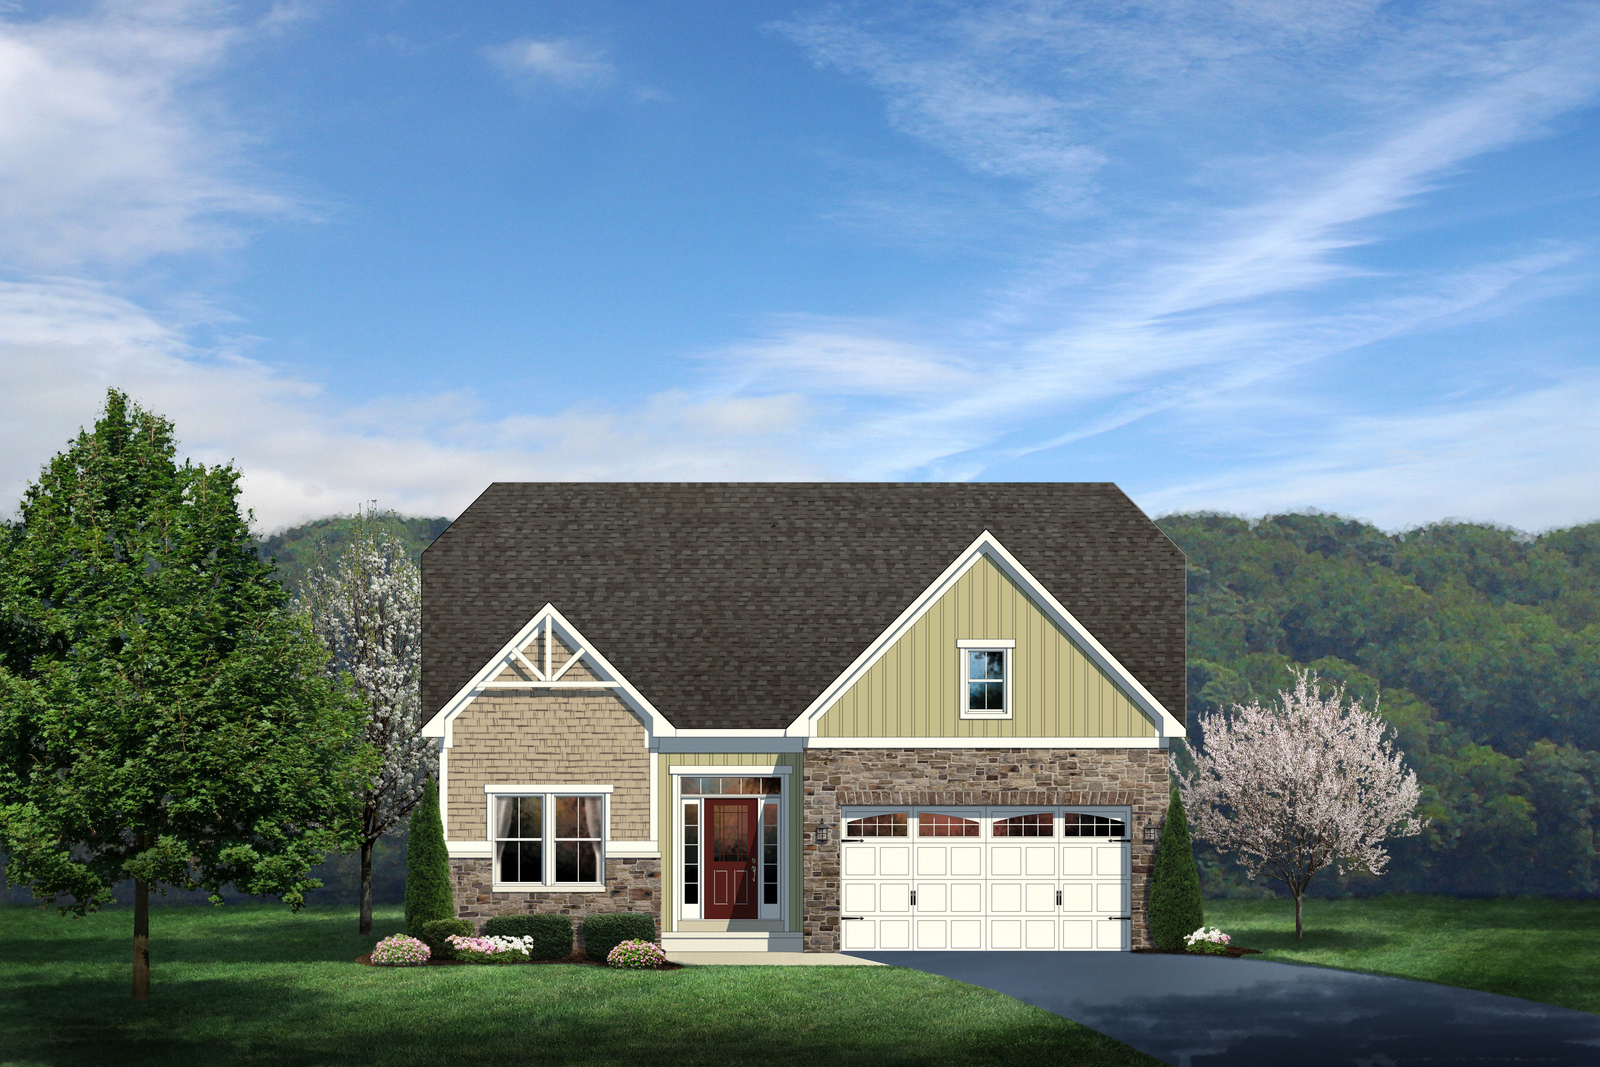 New daventry home model for sale heartland homes for Heartland homes pittsburgh floor plans